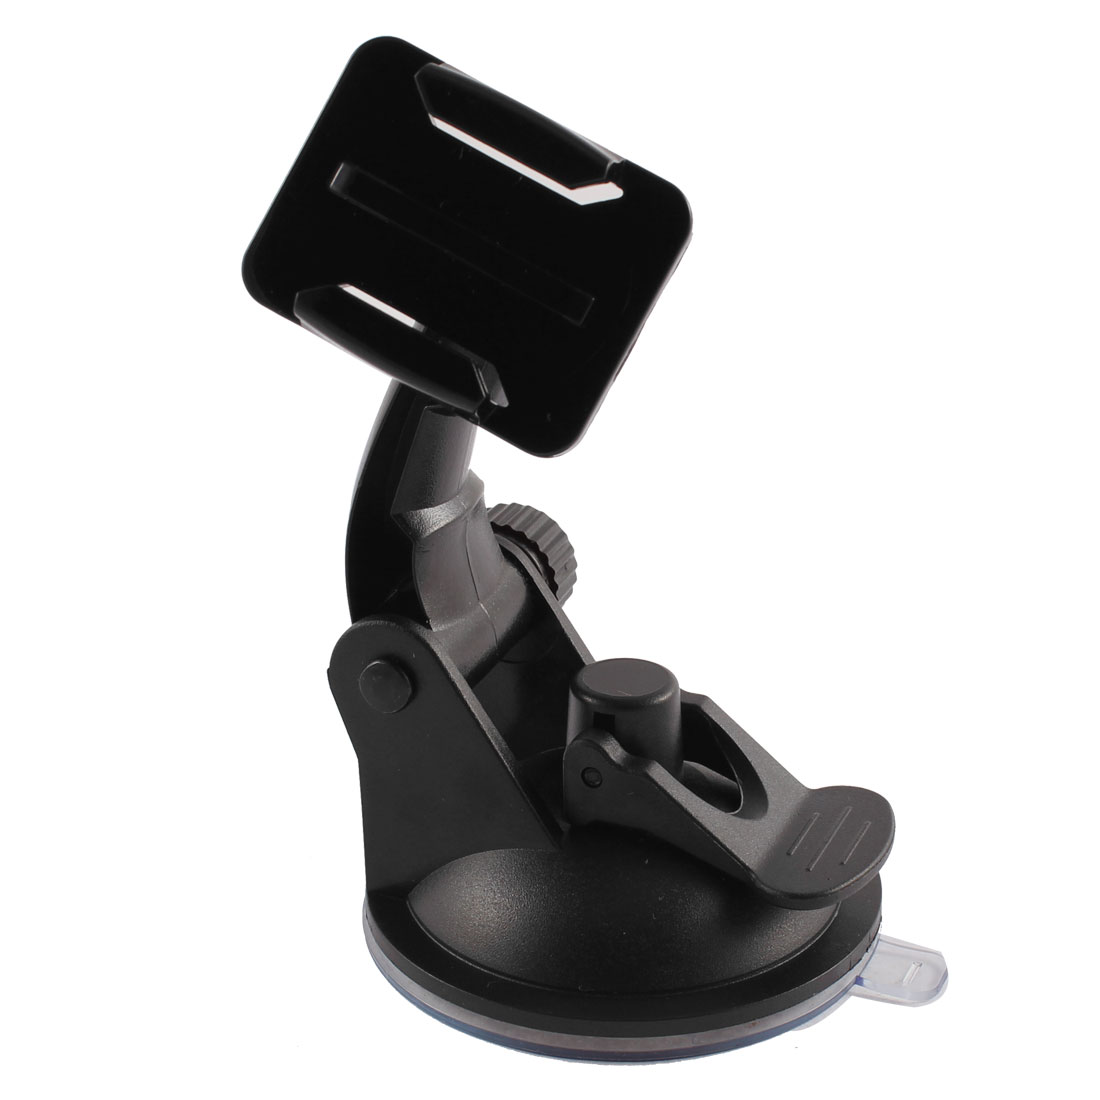 Car Adjustable Size Suction Cup Mount Stand Mobile Phone Holder 7cm Dia